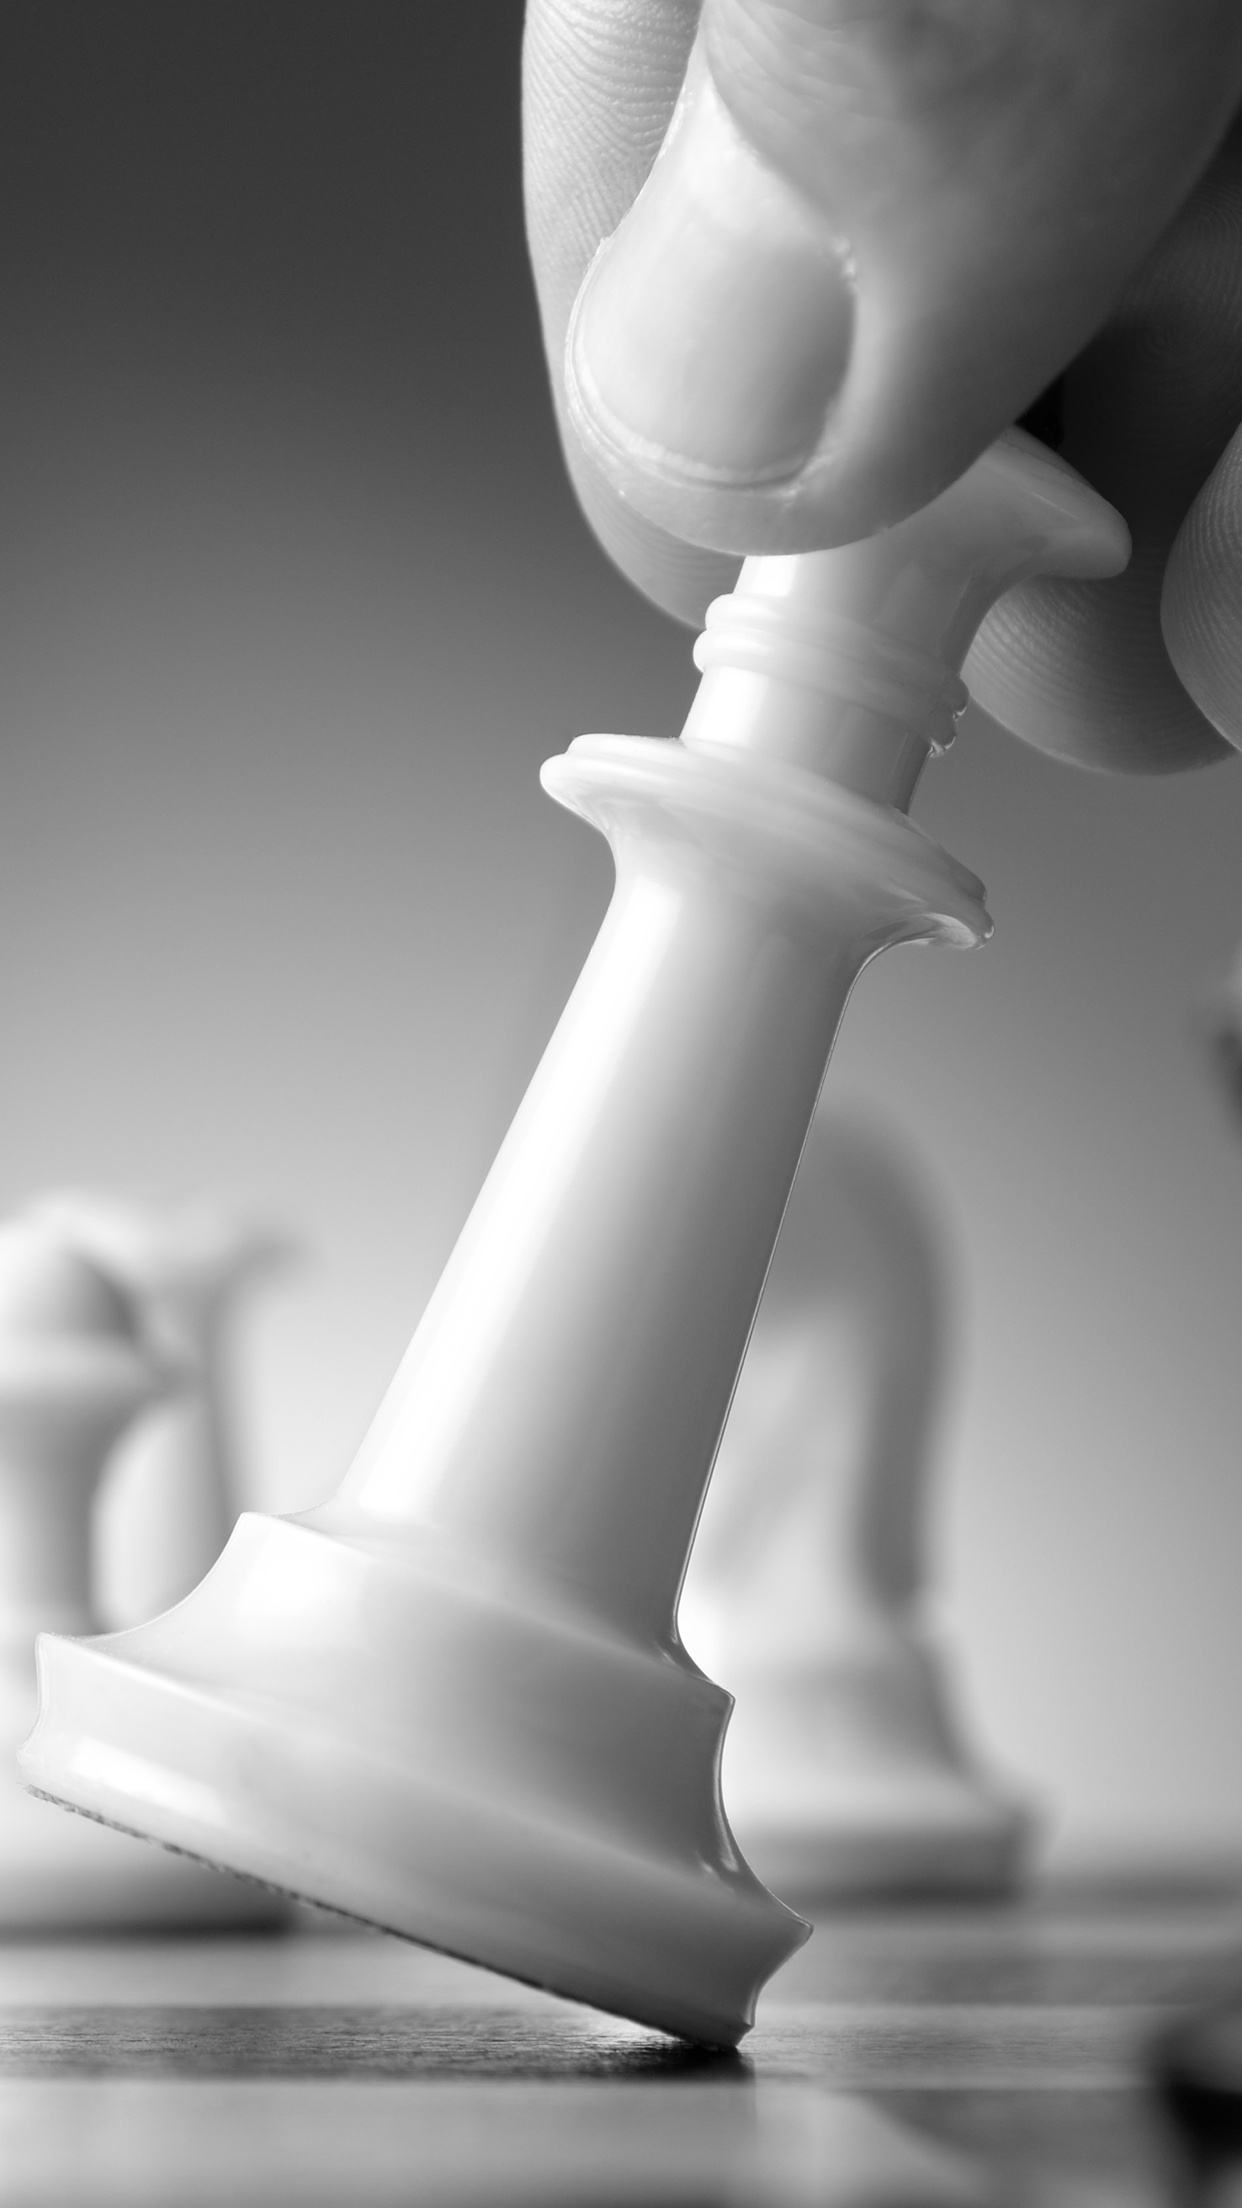 Chess Chess 2 3Wallpapers iPhone Parallax Chess 2